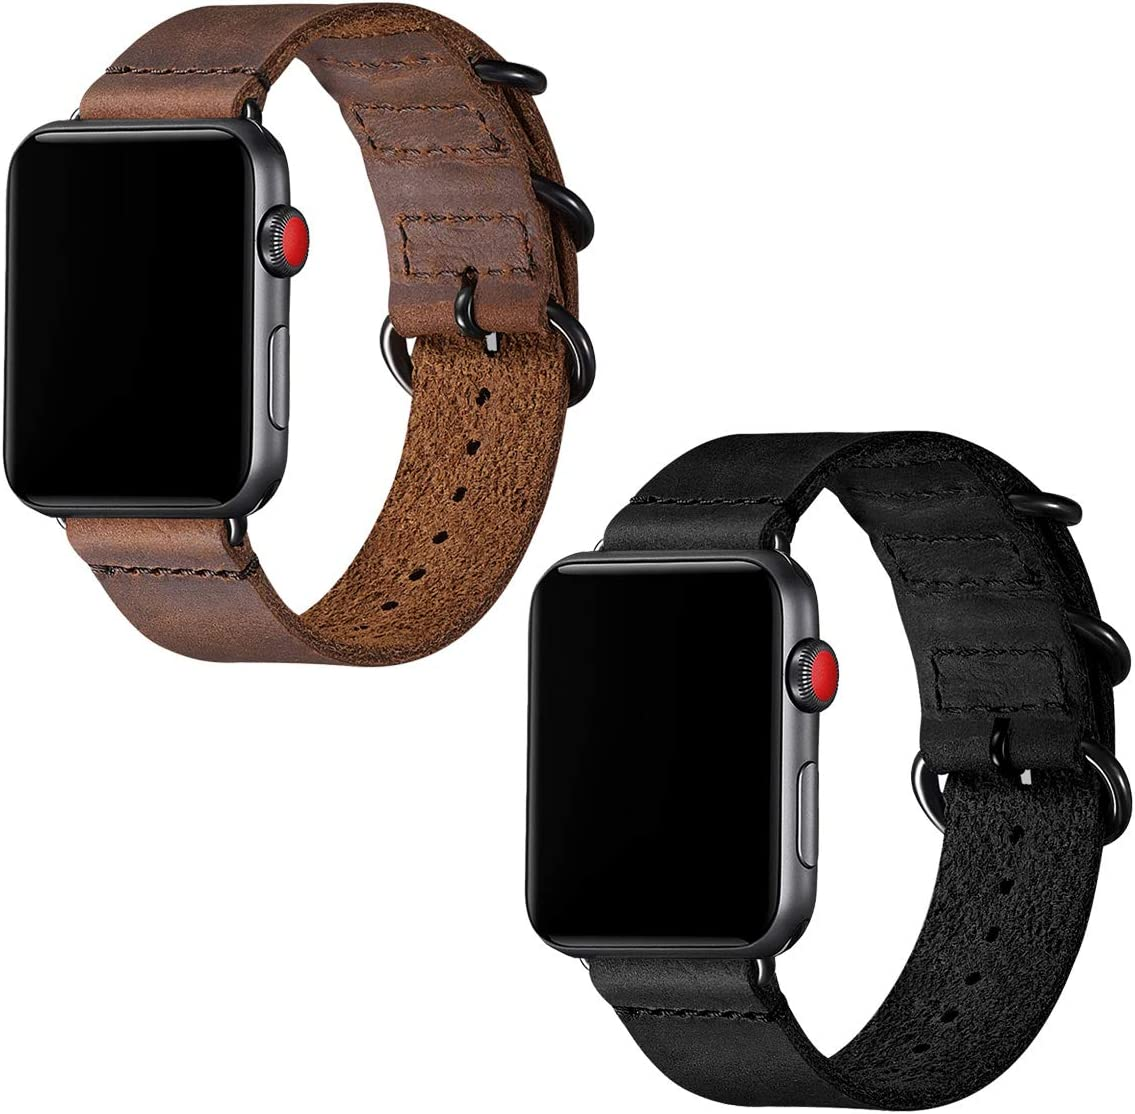 Vintage Leather Bands Compatible with Apple Watch band 42mm 44mm,Genuine Leather Retro Strap Compatible for Men Women iWatch Series5 Series 4/3/2/1